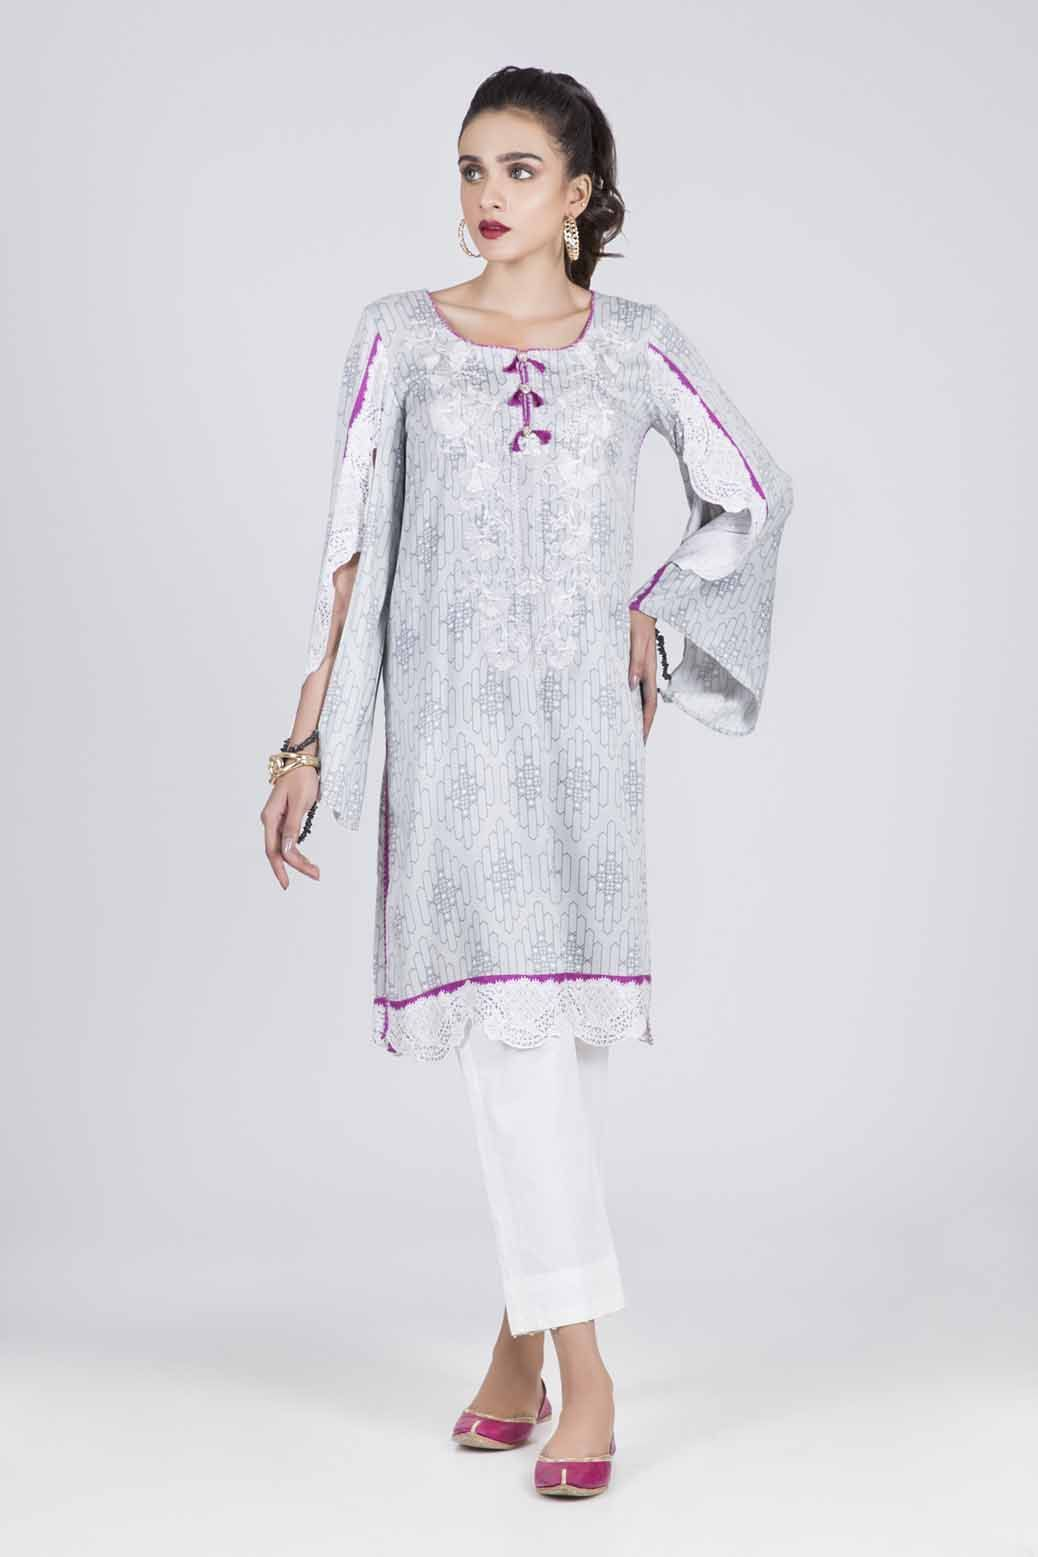 Bonanza Satrangi - GRAY GRACE - 1 PC - RWT91P003